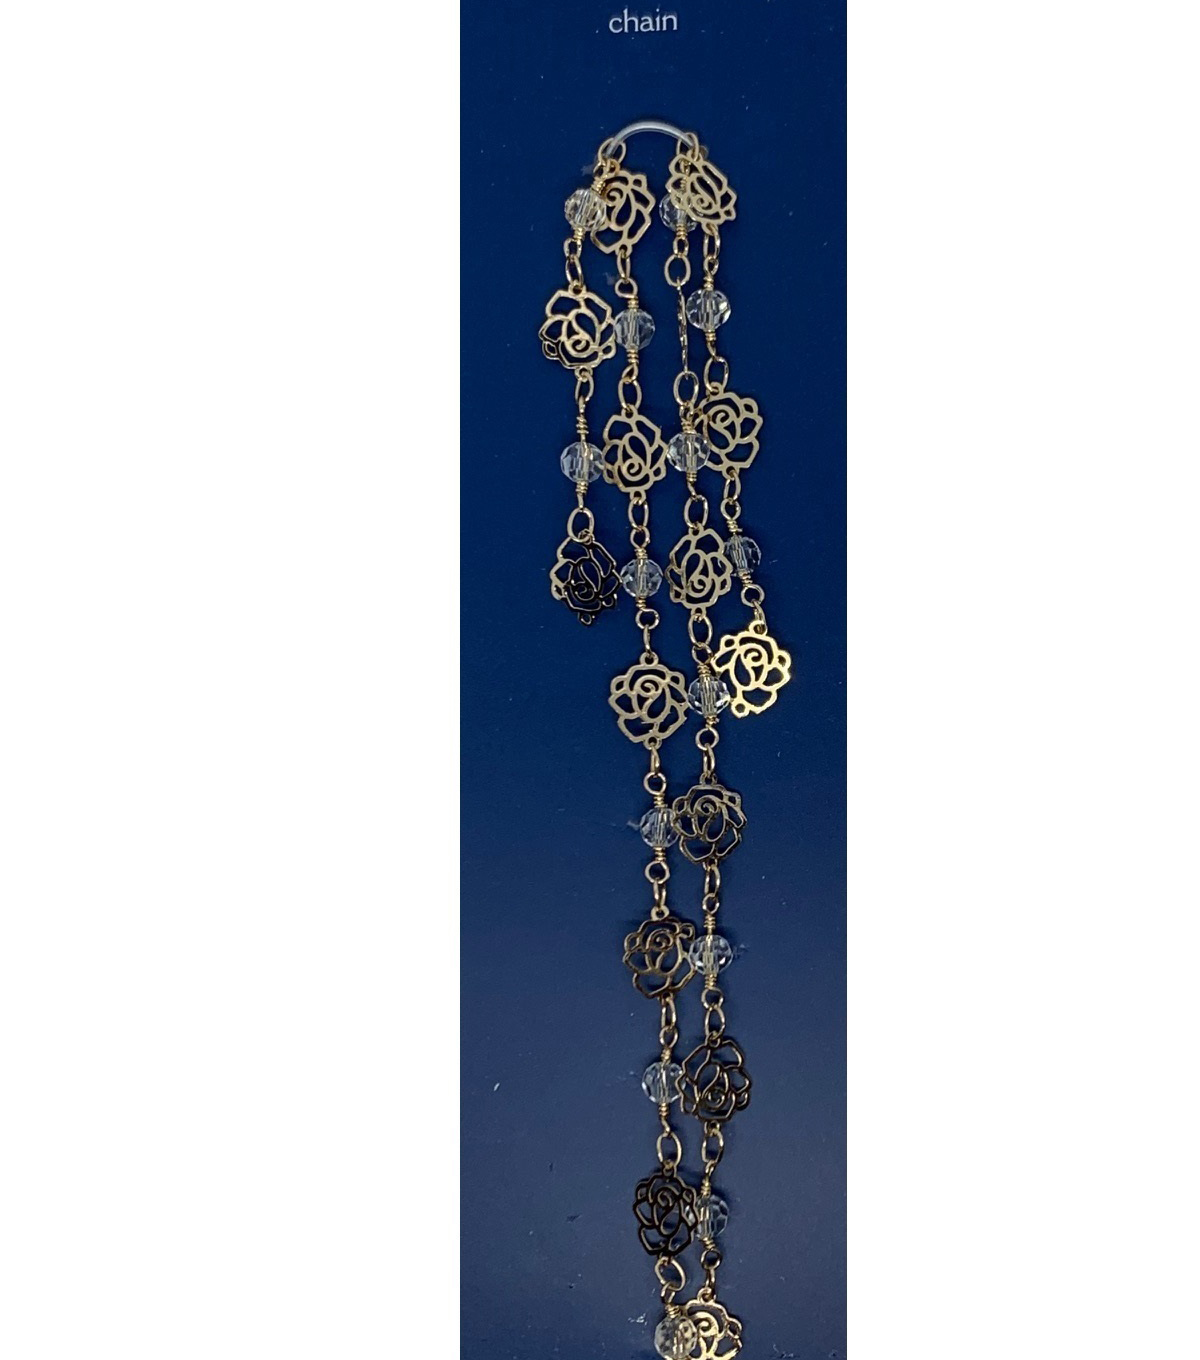 Blue Moon Beads Chain, Connector Link, Cutout Roses, Light Gold